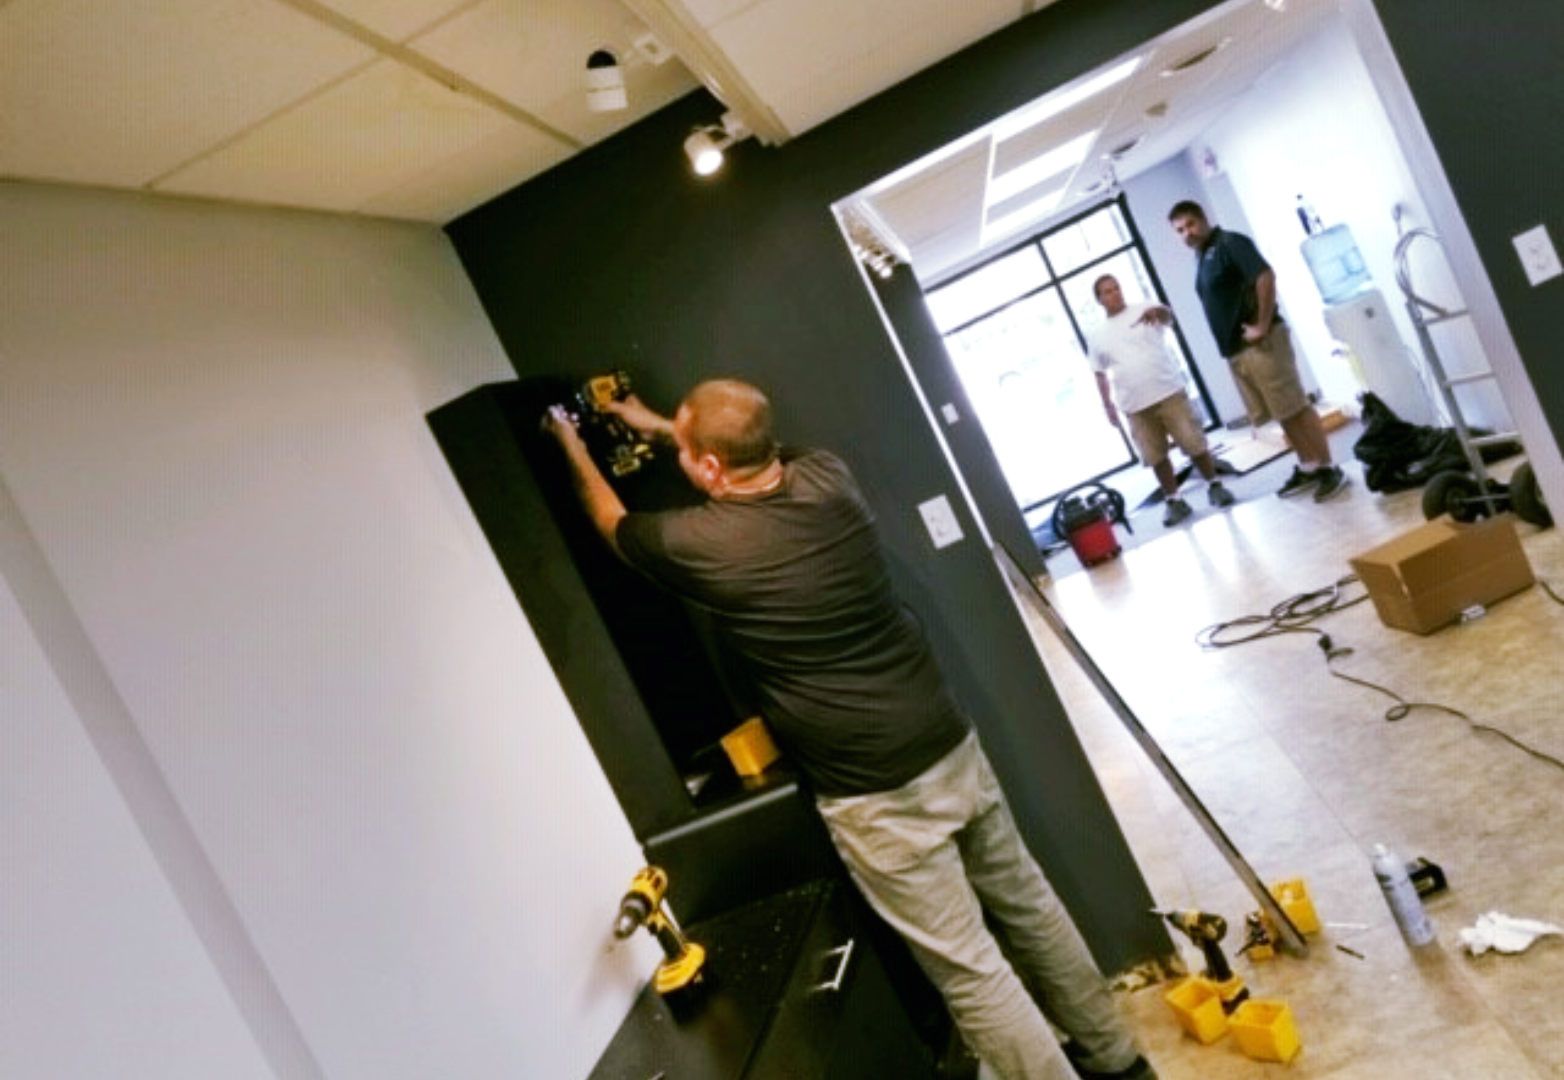 Man using a drill to install hair salon fixtures and design elements.